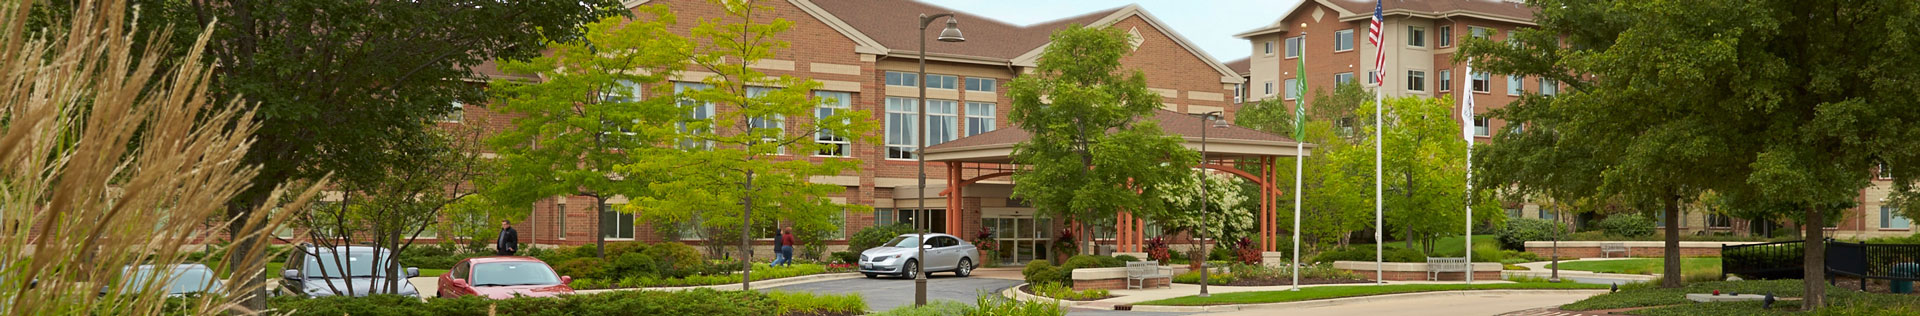 Your Lifestyle at Monarch Landing Senior Living in Naperville